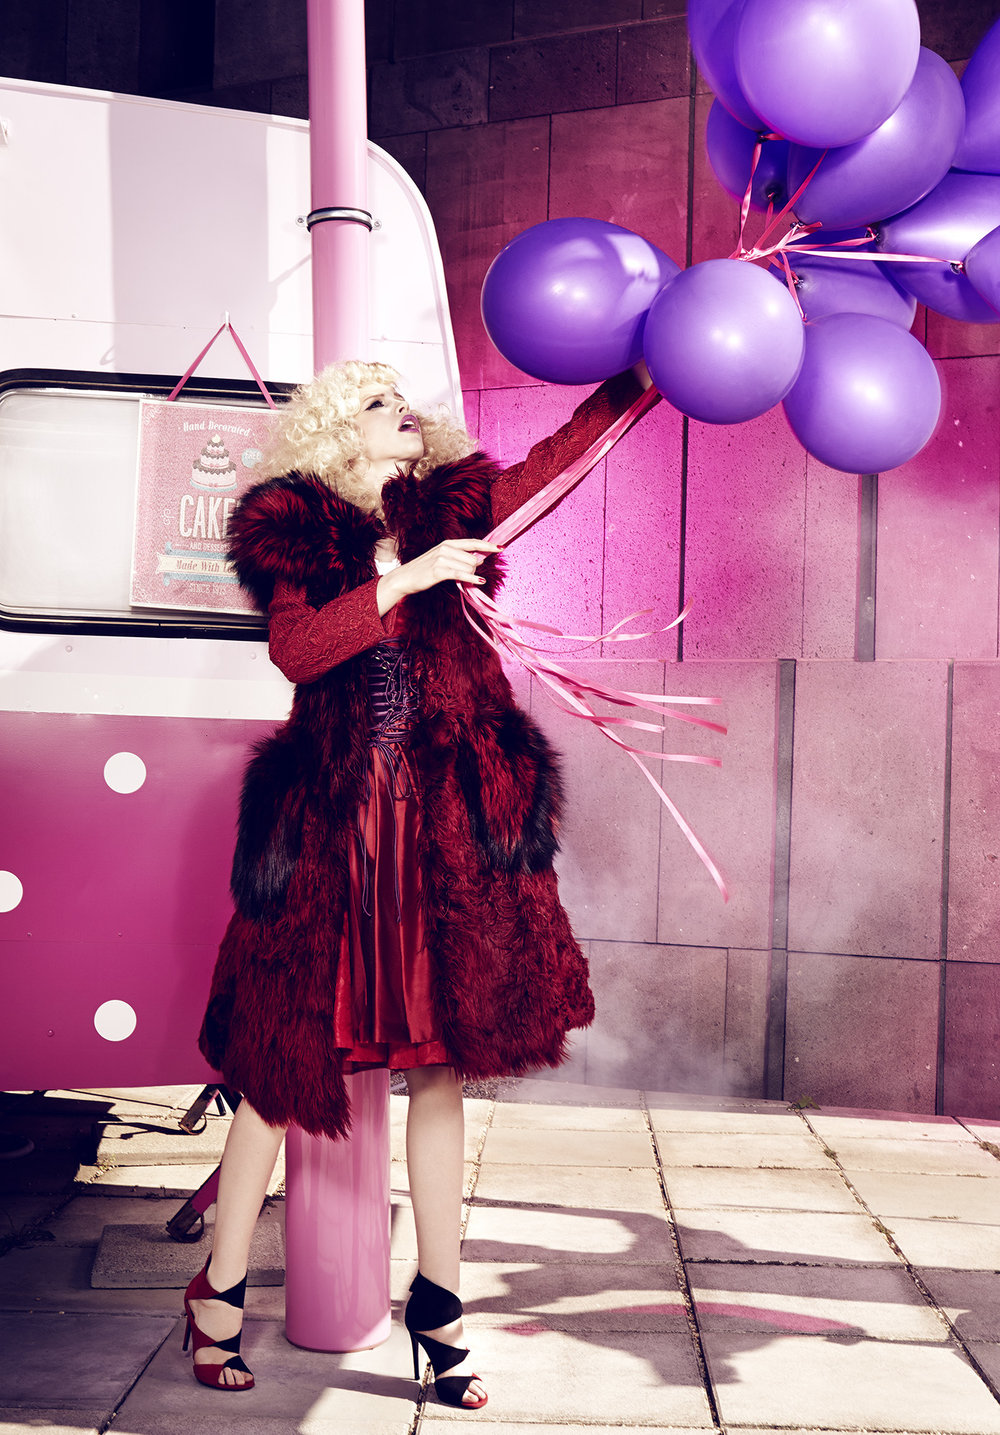 Anatol de cap rouge - cakes and road trips - purple balloons